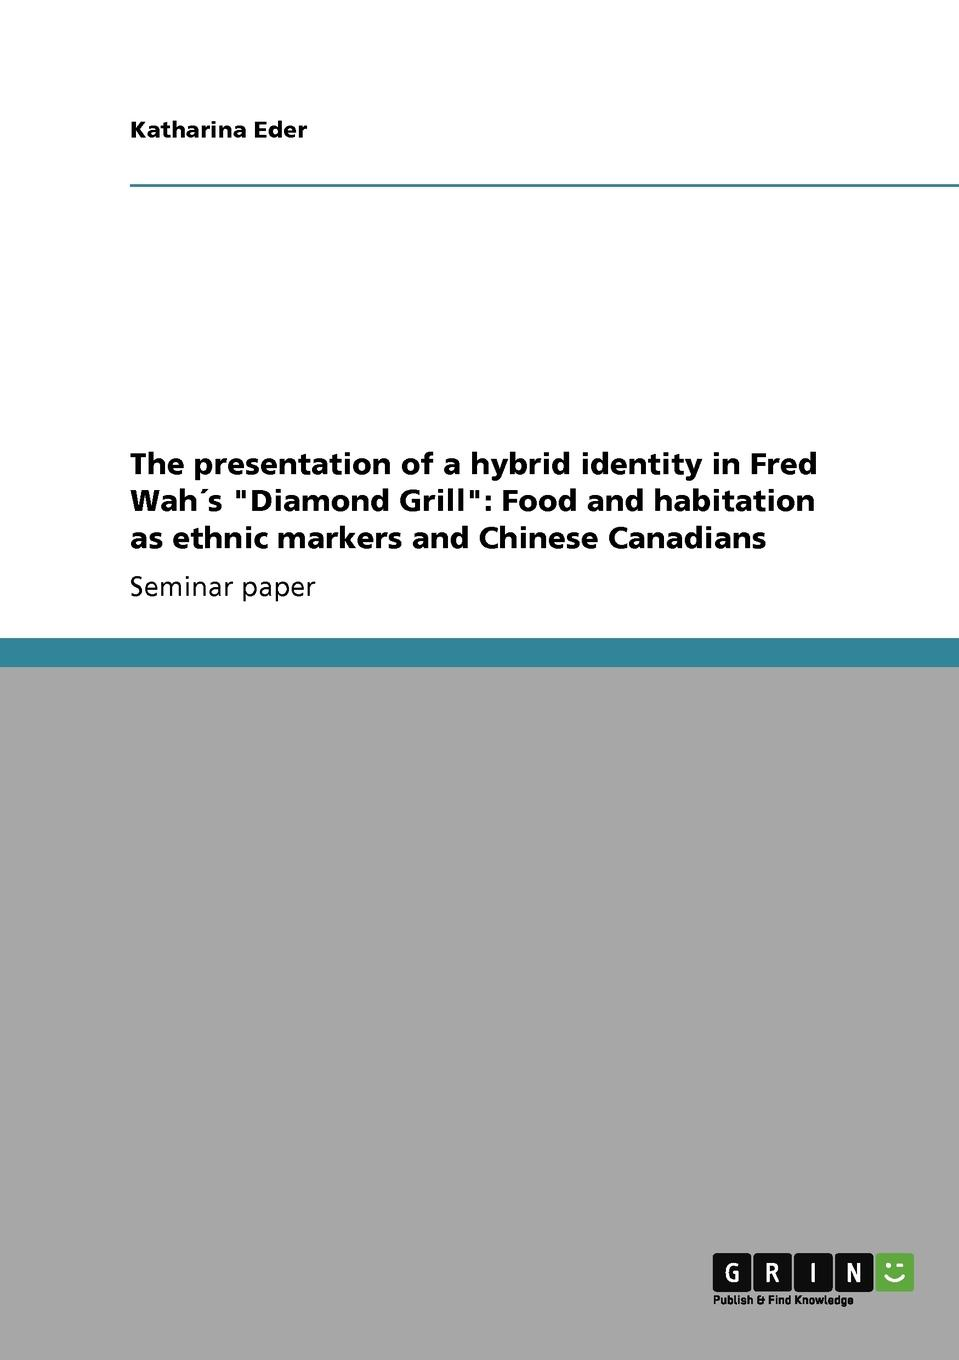 Katharina Eder The presentation of a hybrid identity in Fred Wah.s